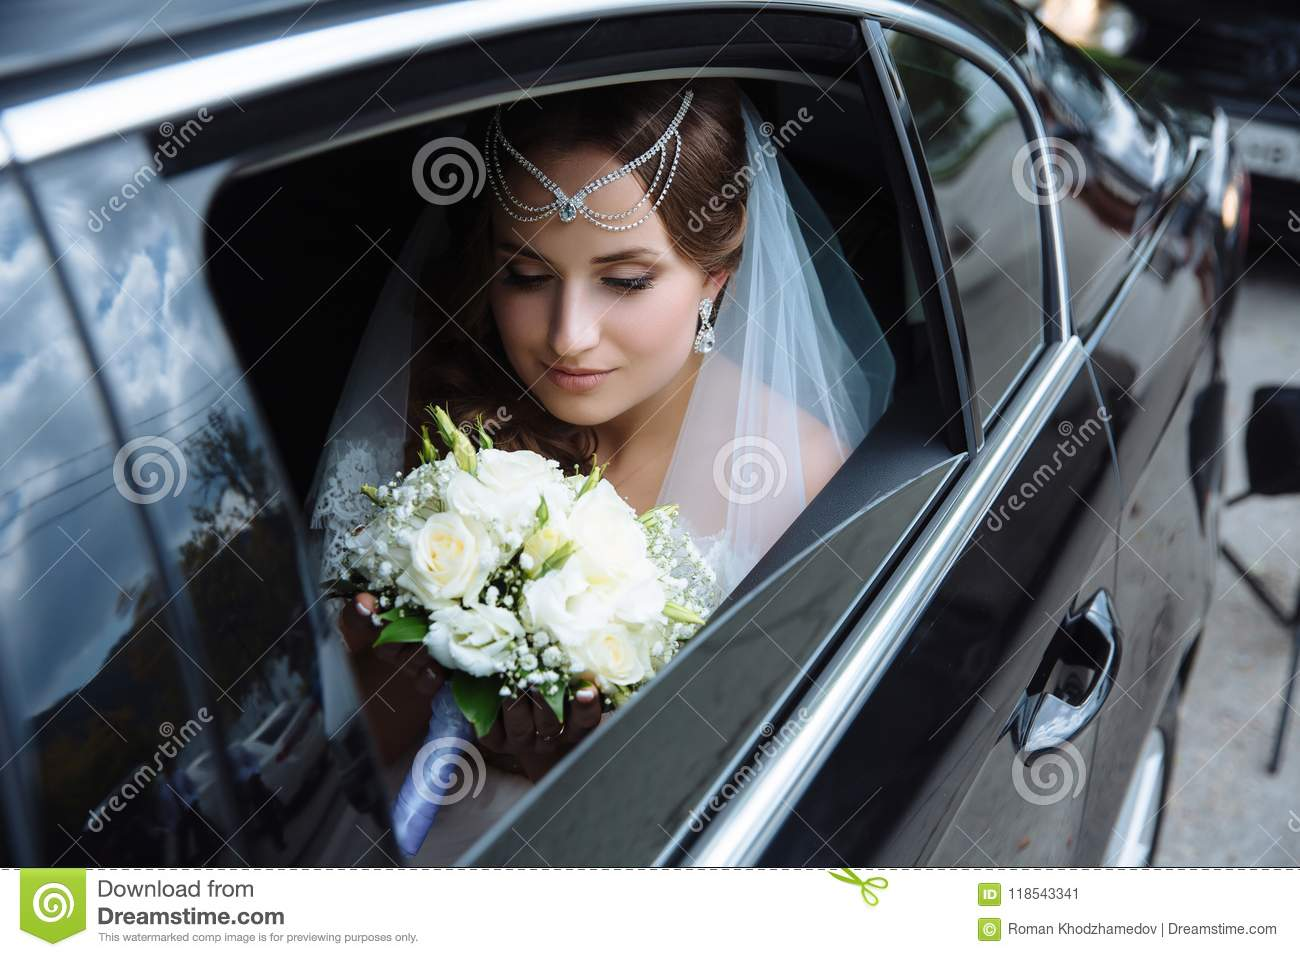 The Bride Is Dressed In A Wedding Dress And Veil Her Head Is Draped With A Lapel And Sits In The Car And Admires The Stock Image Image Of Luxurious Love